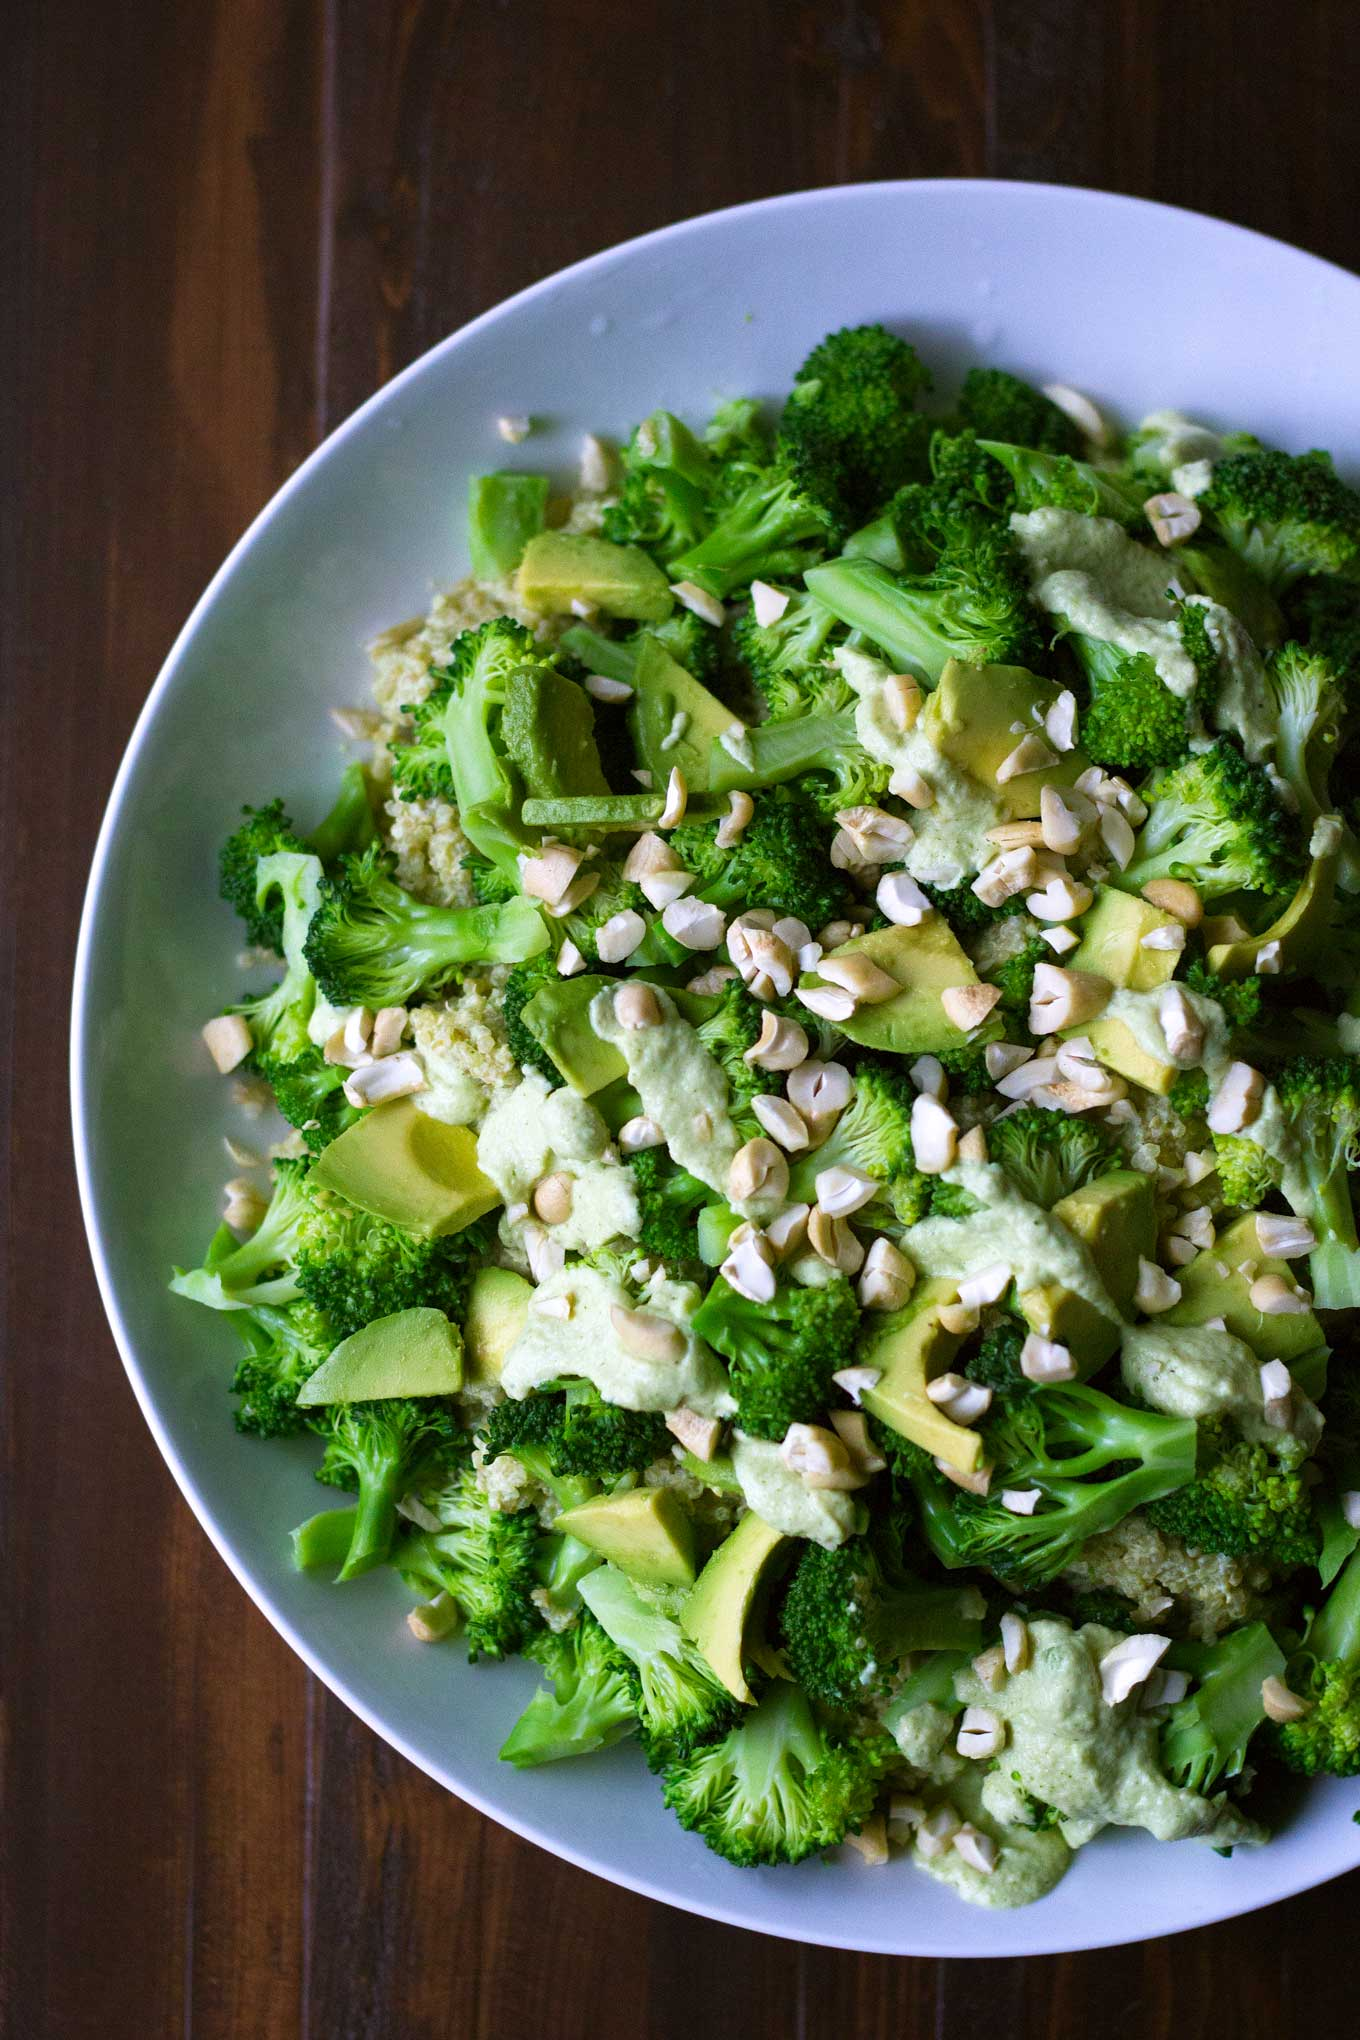 Triple Broccoli Quinoa | Broccoli is the star of the show in this delicious and healthy meal! Packed with protein and and so good for you. Vegan, gluten-free, WFPB | https://eatwithinyourmeans.com/